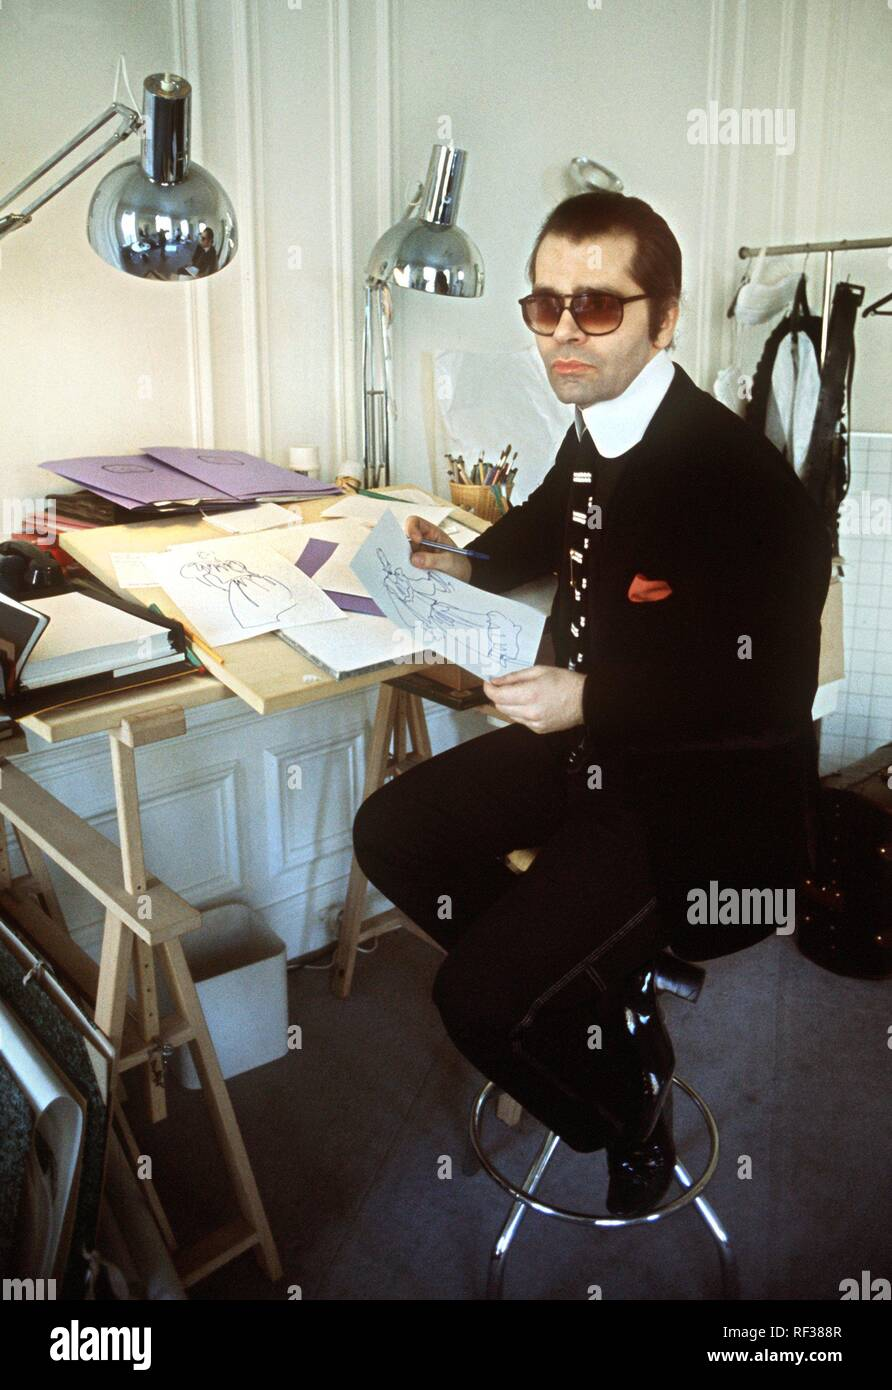 German Fashion Designer Karl Lagerfeld Sits At His Desk In 1979 Also Known As King Karl He Is One Of The Most Successful Fashion Designers Of The 20th Century Usage Worldwide